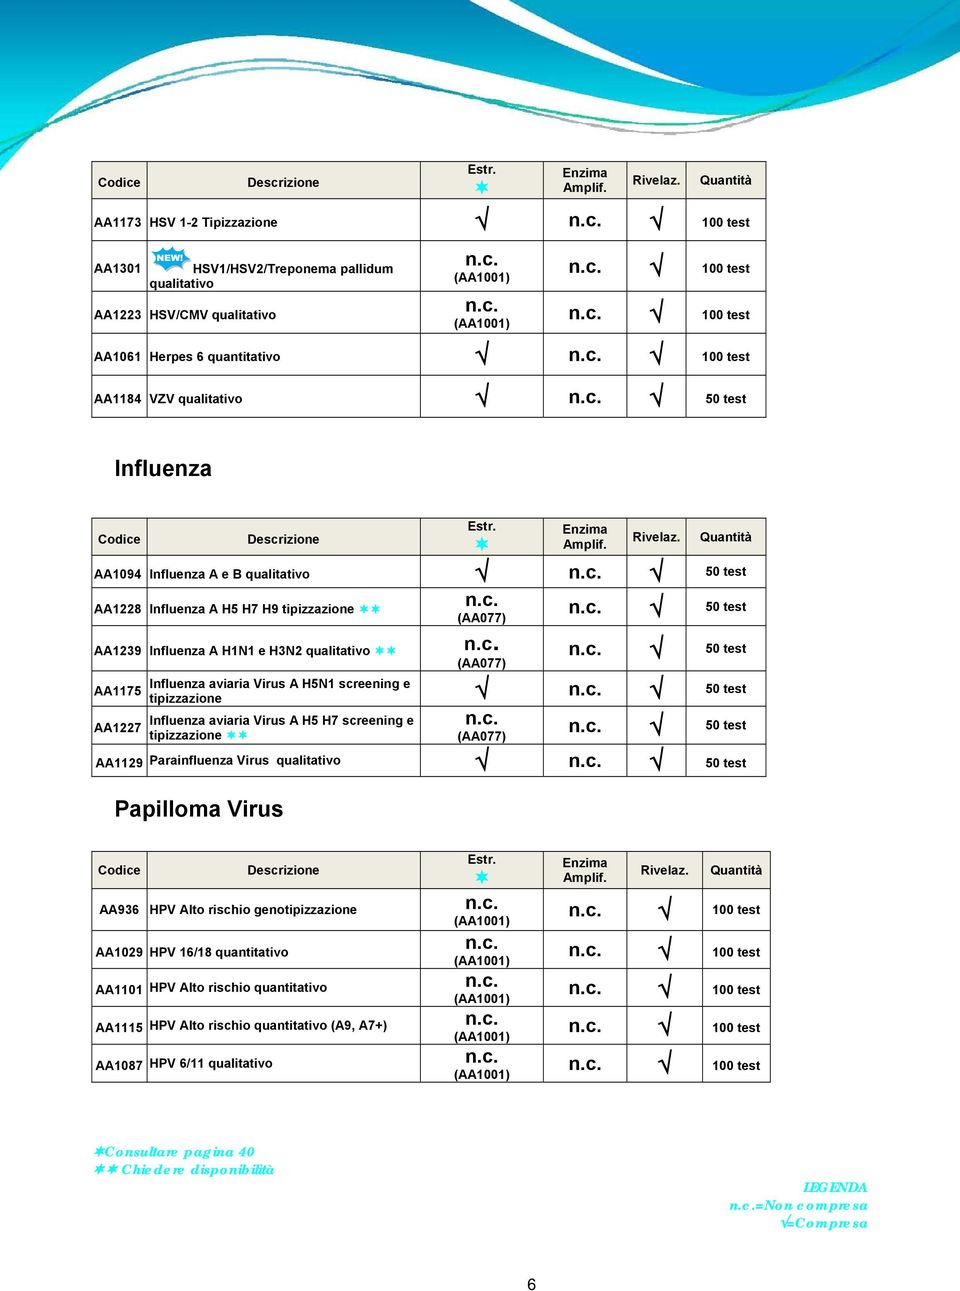 aviaria Virus A H5N1 screening e tipizzazione 50 test Influenza aviaria Virus A H5 H7 screening e tipizzazione (AA077) 50 test AA1129 Parainfluenza Virus qualitativo 50 test Papilloma Virus AA936 HPV